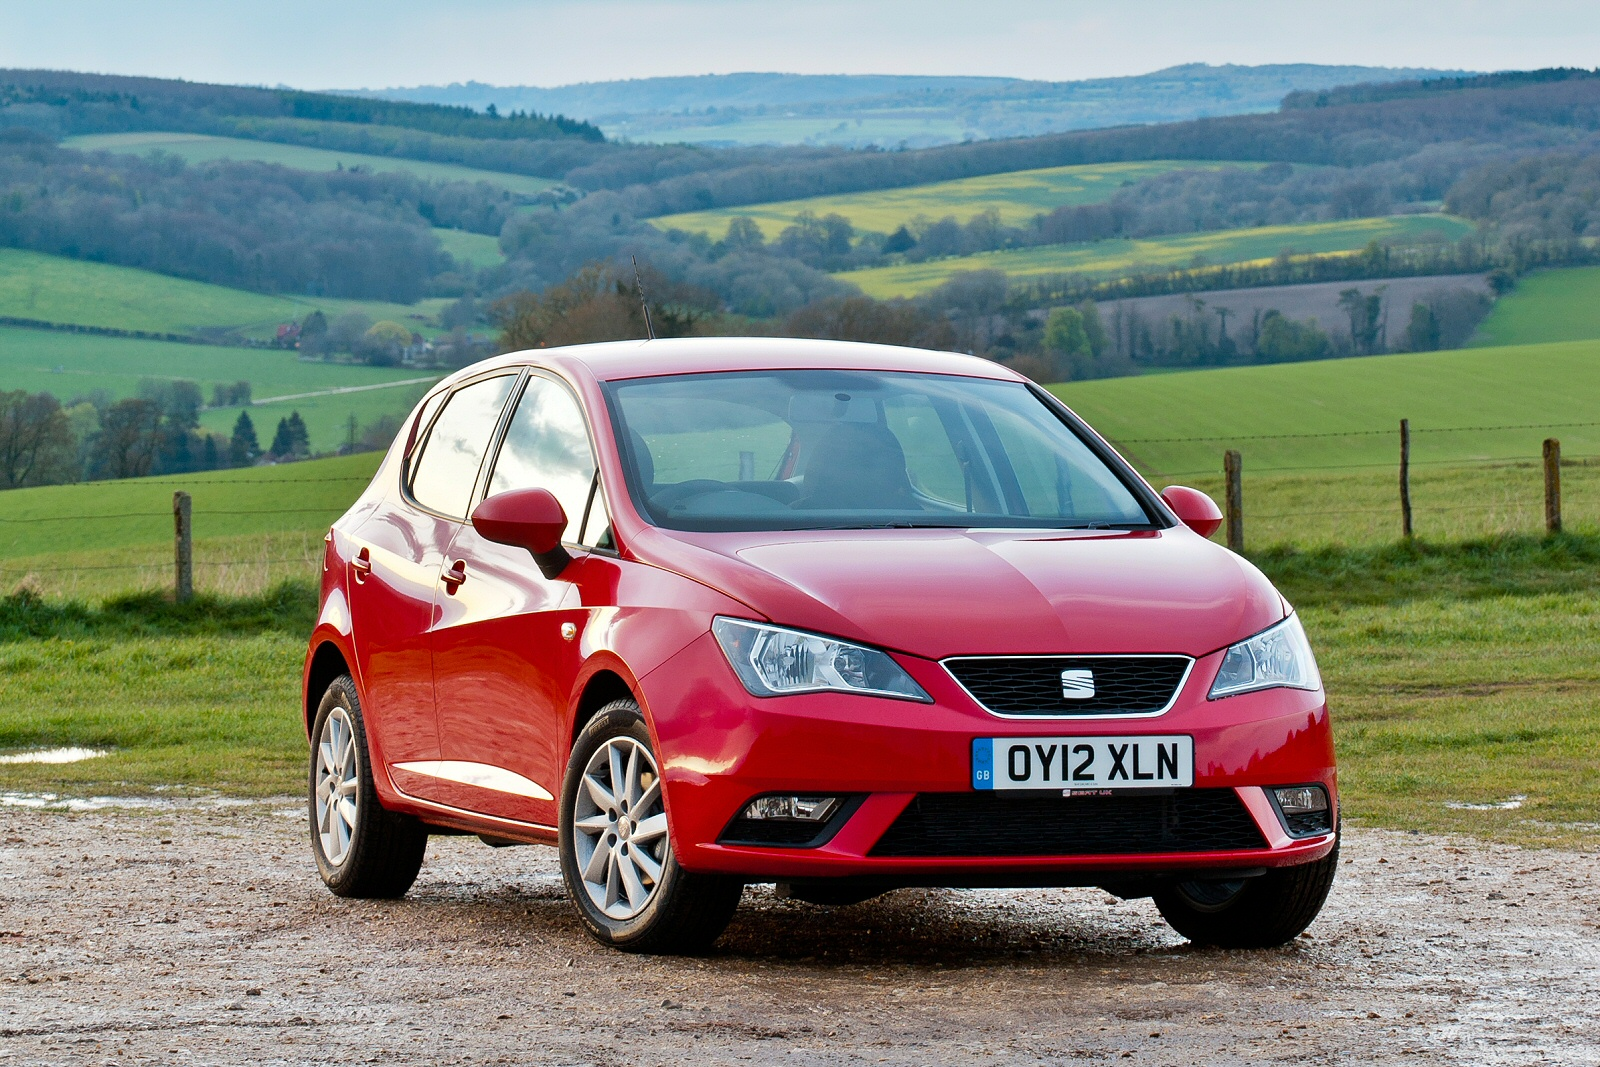 new seat ibiza 1 0 tsi 95 fr 5dr petrol hatchback for sale bristol street. Black Bedroom Furniture Sets. Home Design Ideas